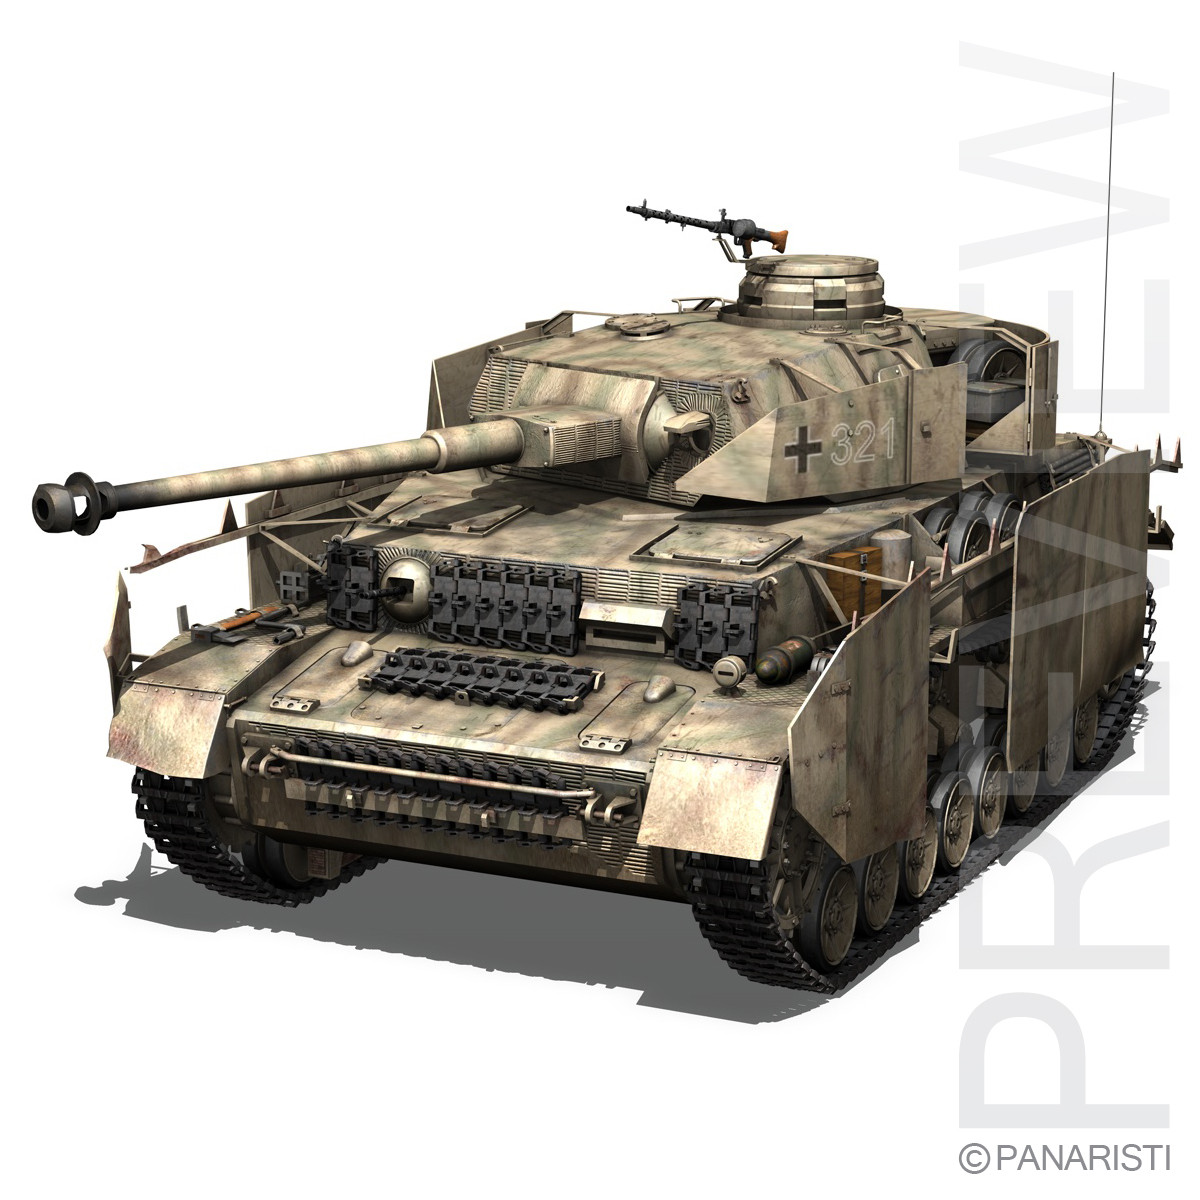 SD.KFZ 161 PzKpfw IV - Panzer 4 - Ausf.H Late